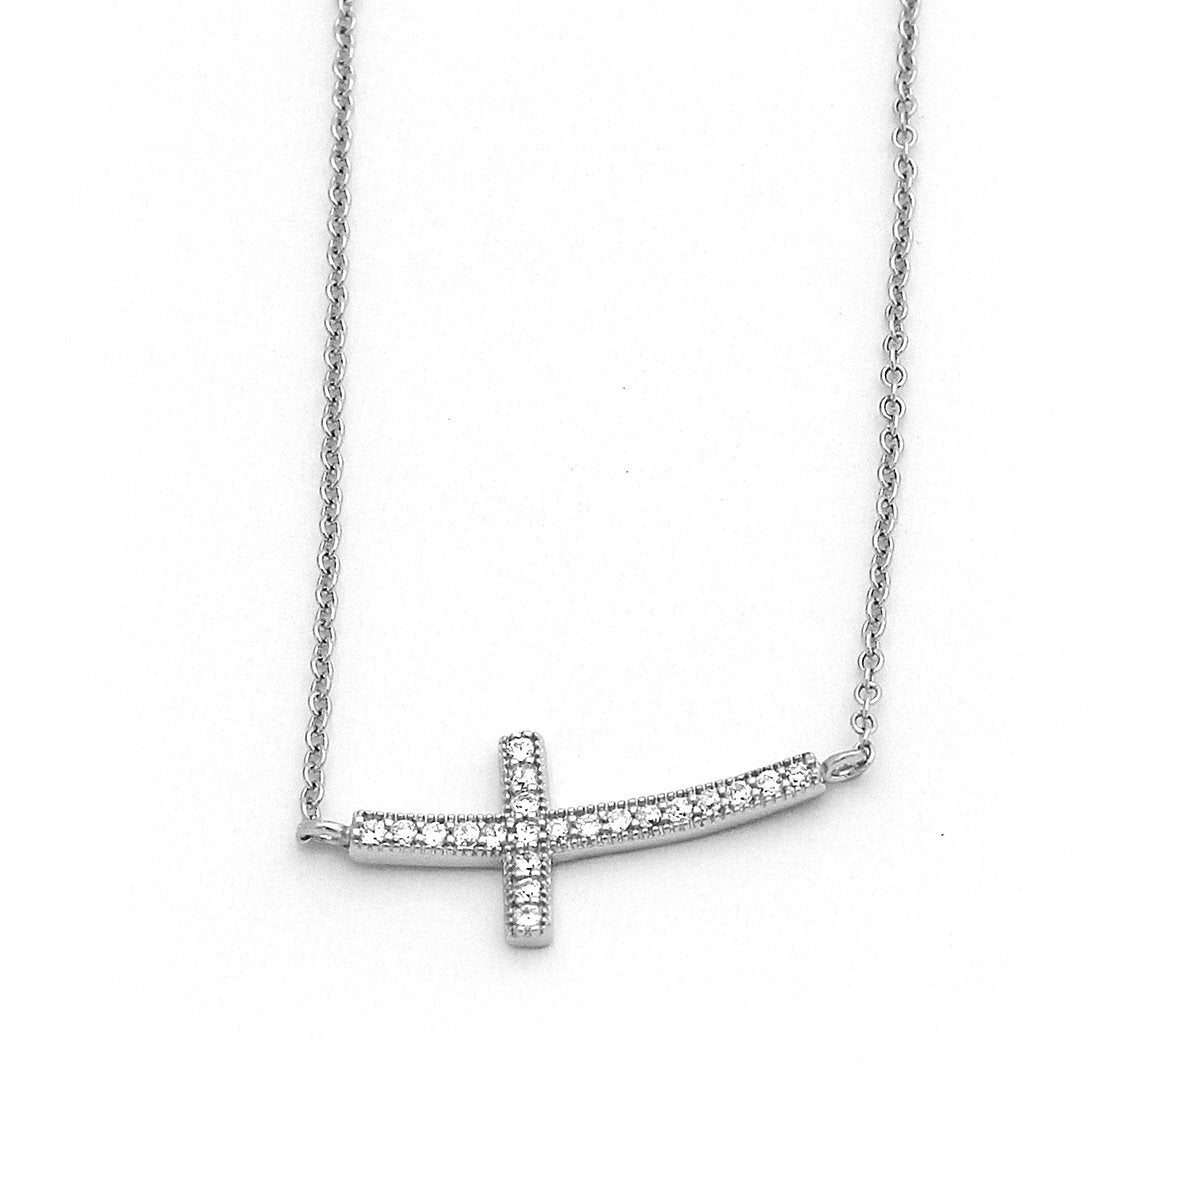 Mireval Sterling Silver Passion Cross Charm on an Optional Charm Holder